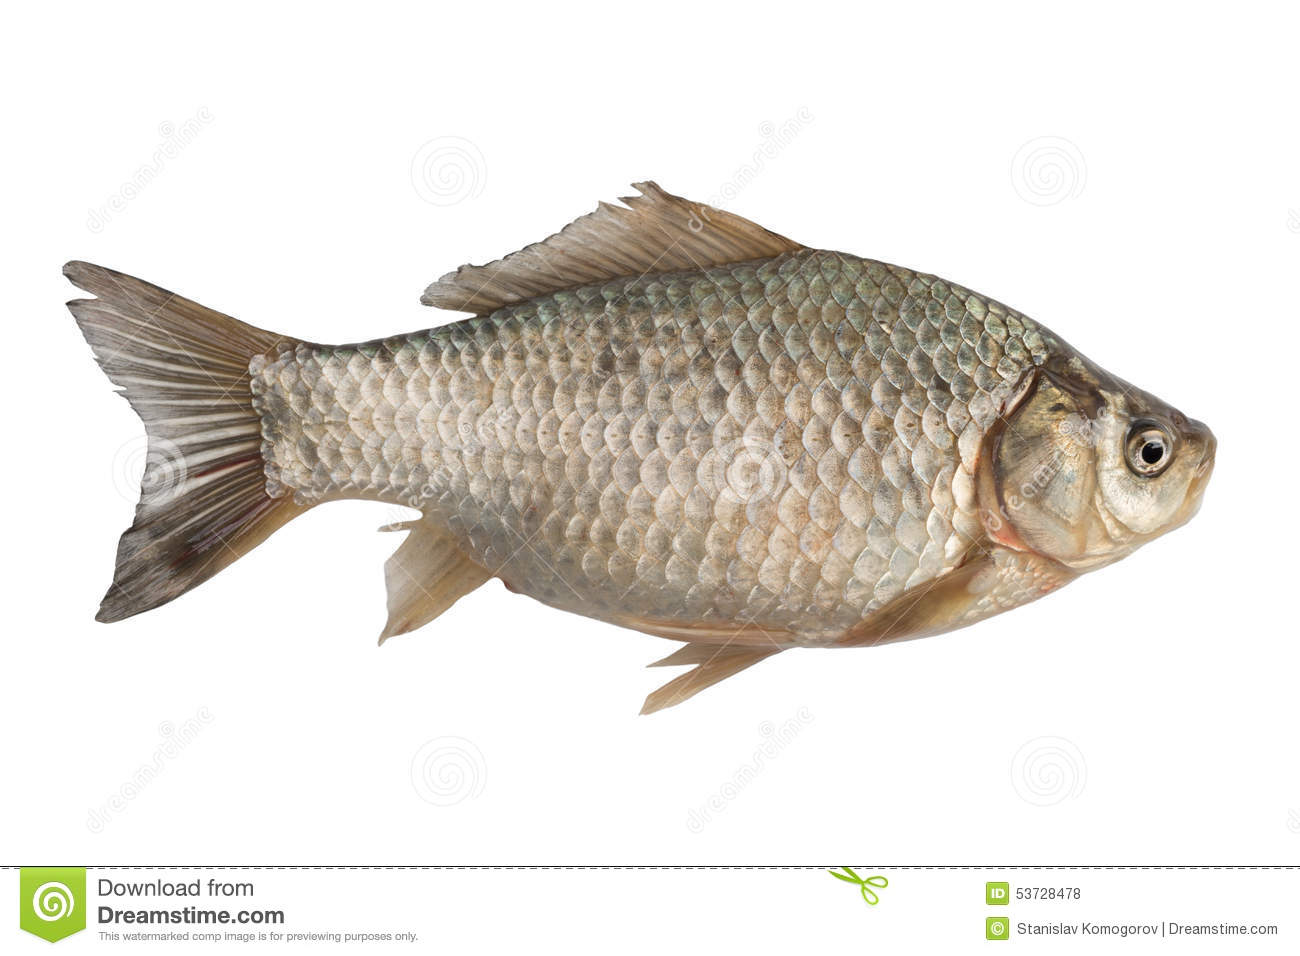 Fra chement carpe de crucian de poisson d 39 eau douce photo for Poisson eau douce